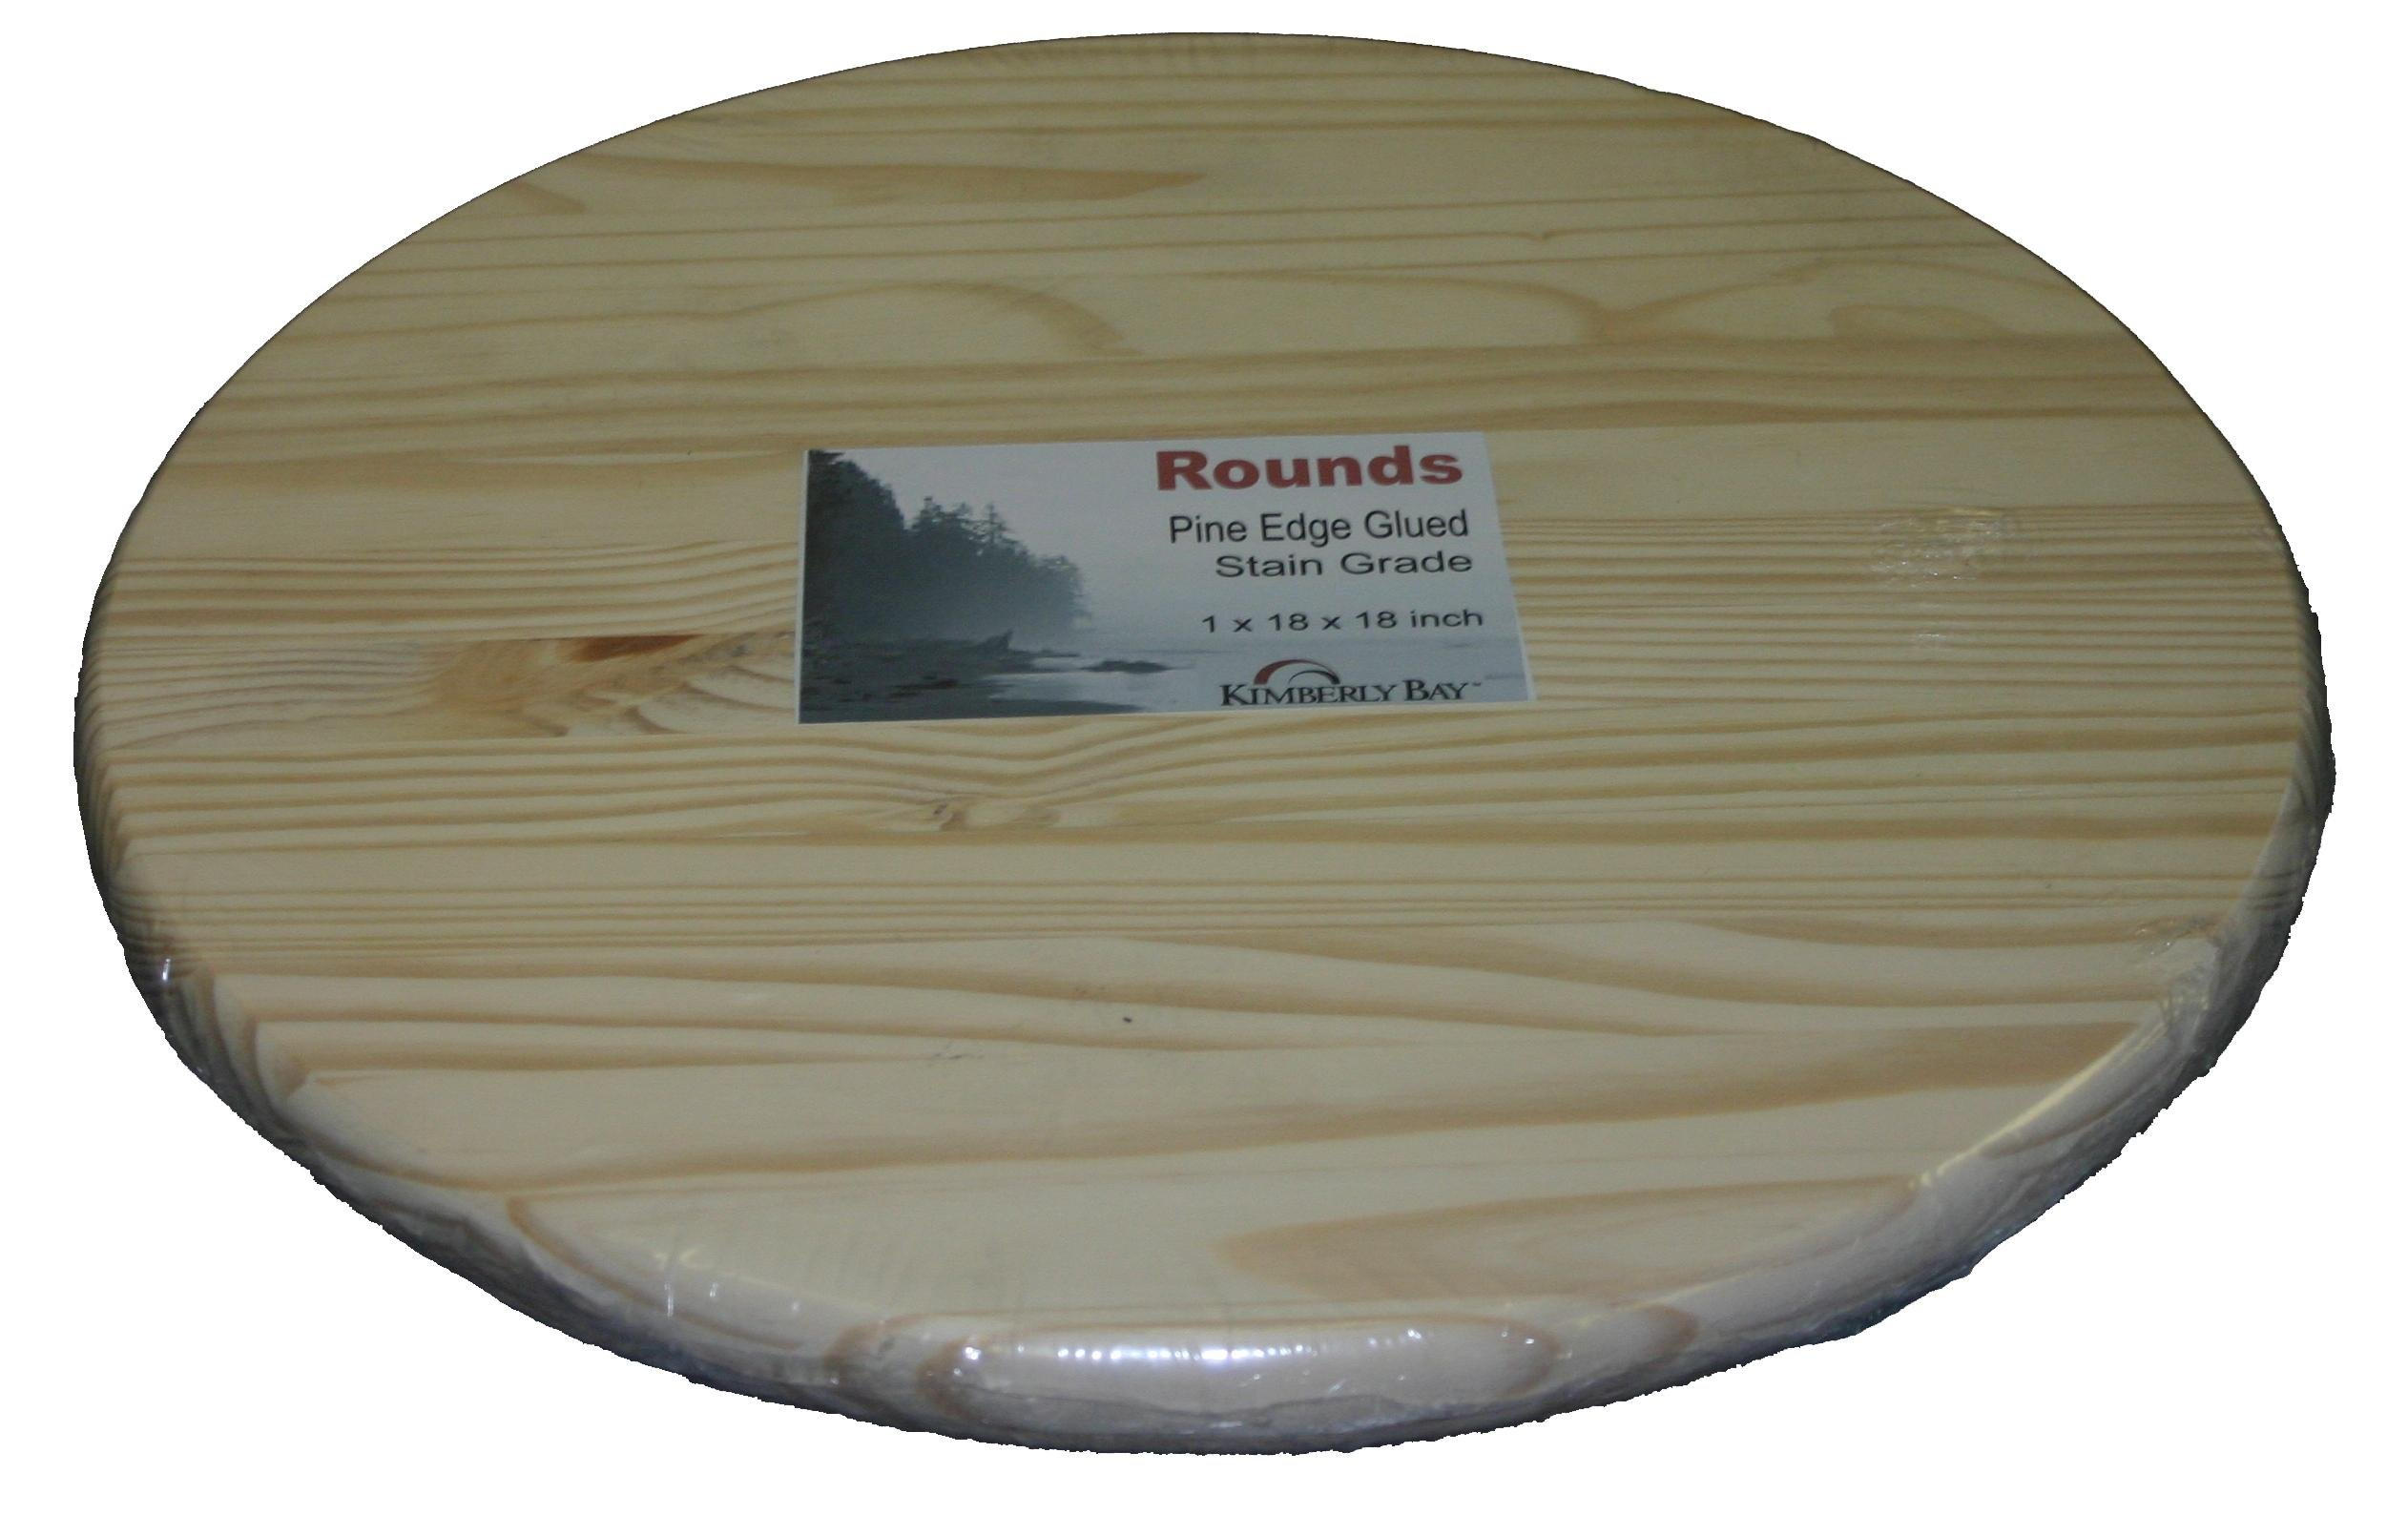 Edge Glued Pine Rounds 1x30x30'' by Kimberly Bay TM (Image #1)